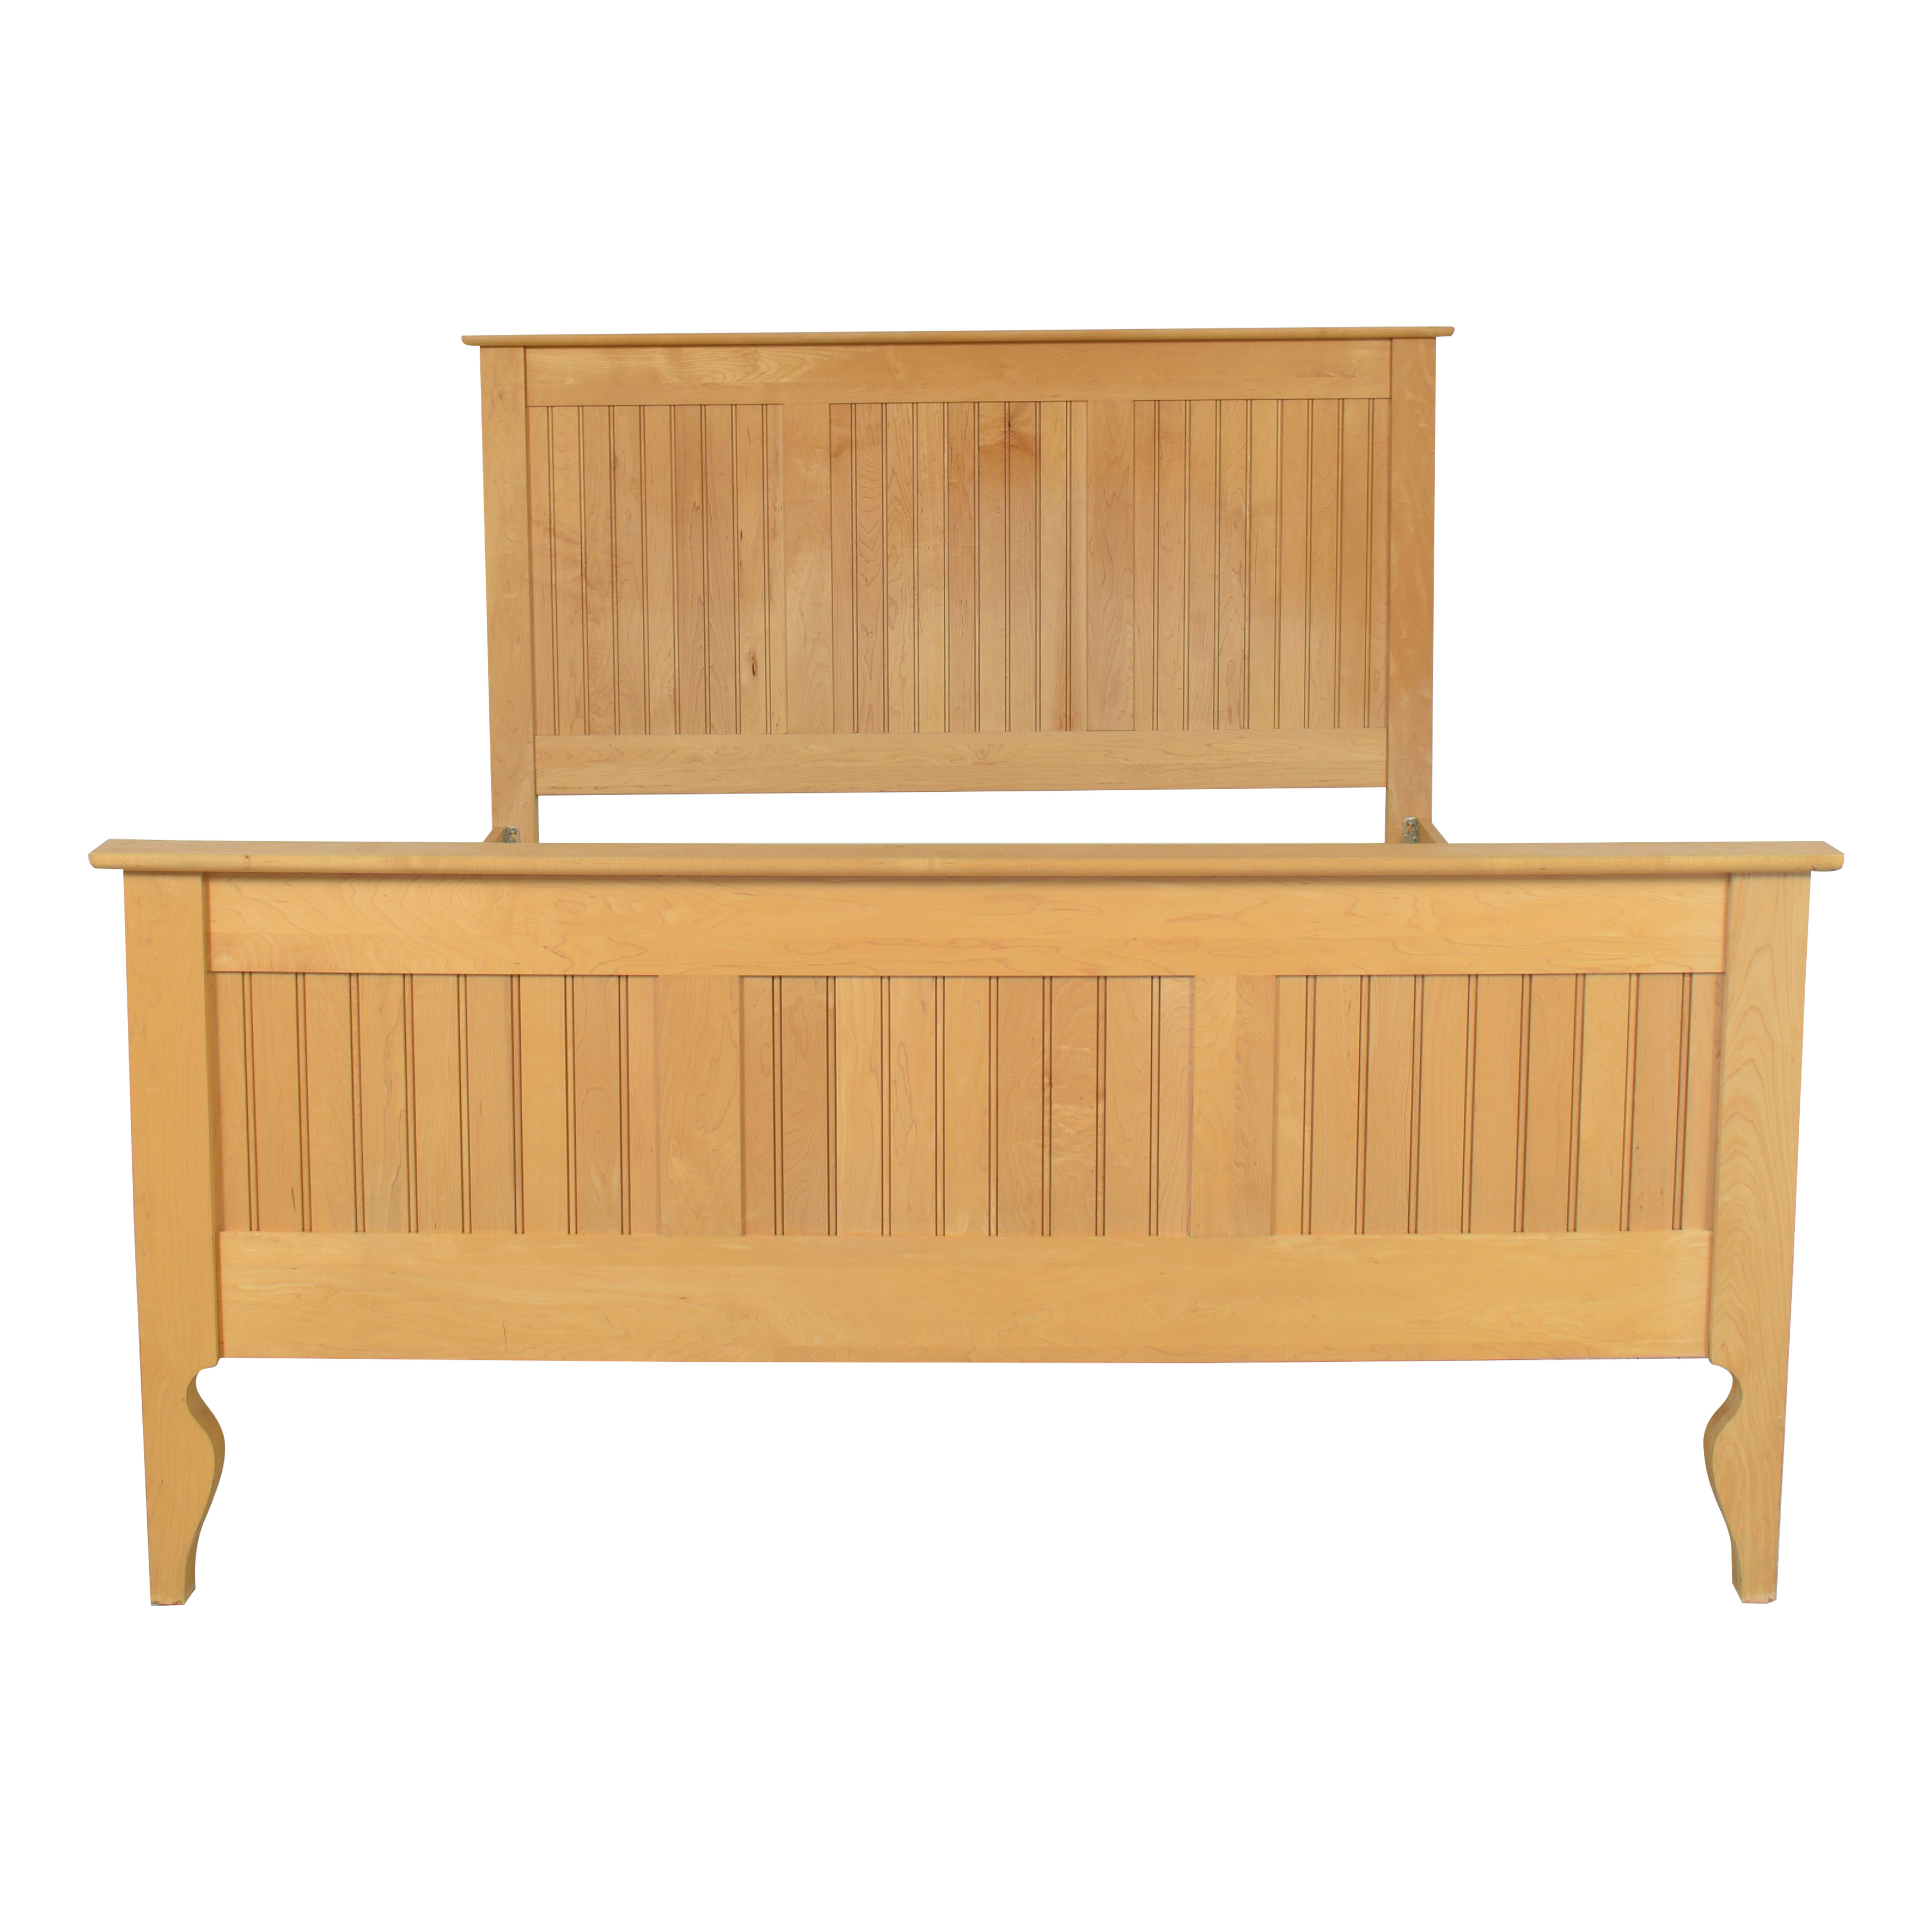 Crate & Barrel Crate & Barrel Wooden Queen Bed Bed Frames